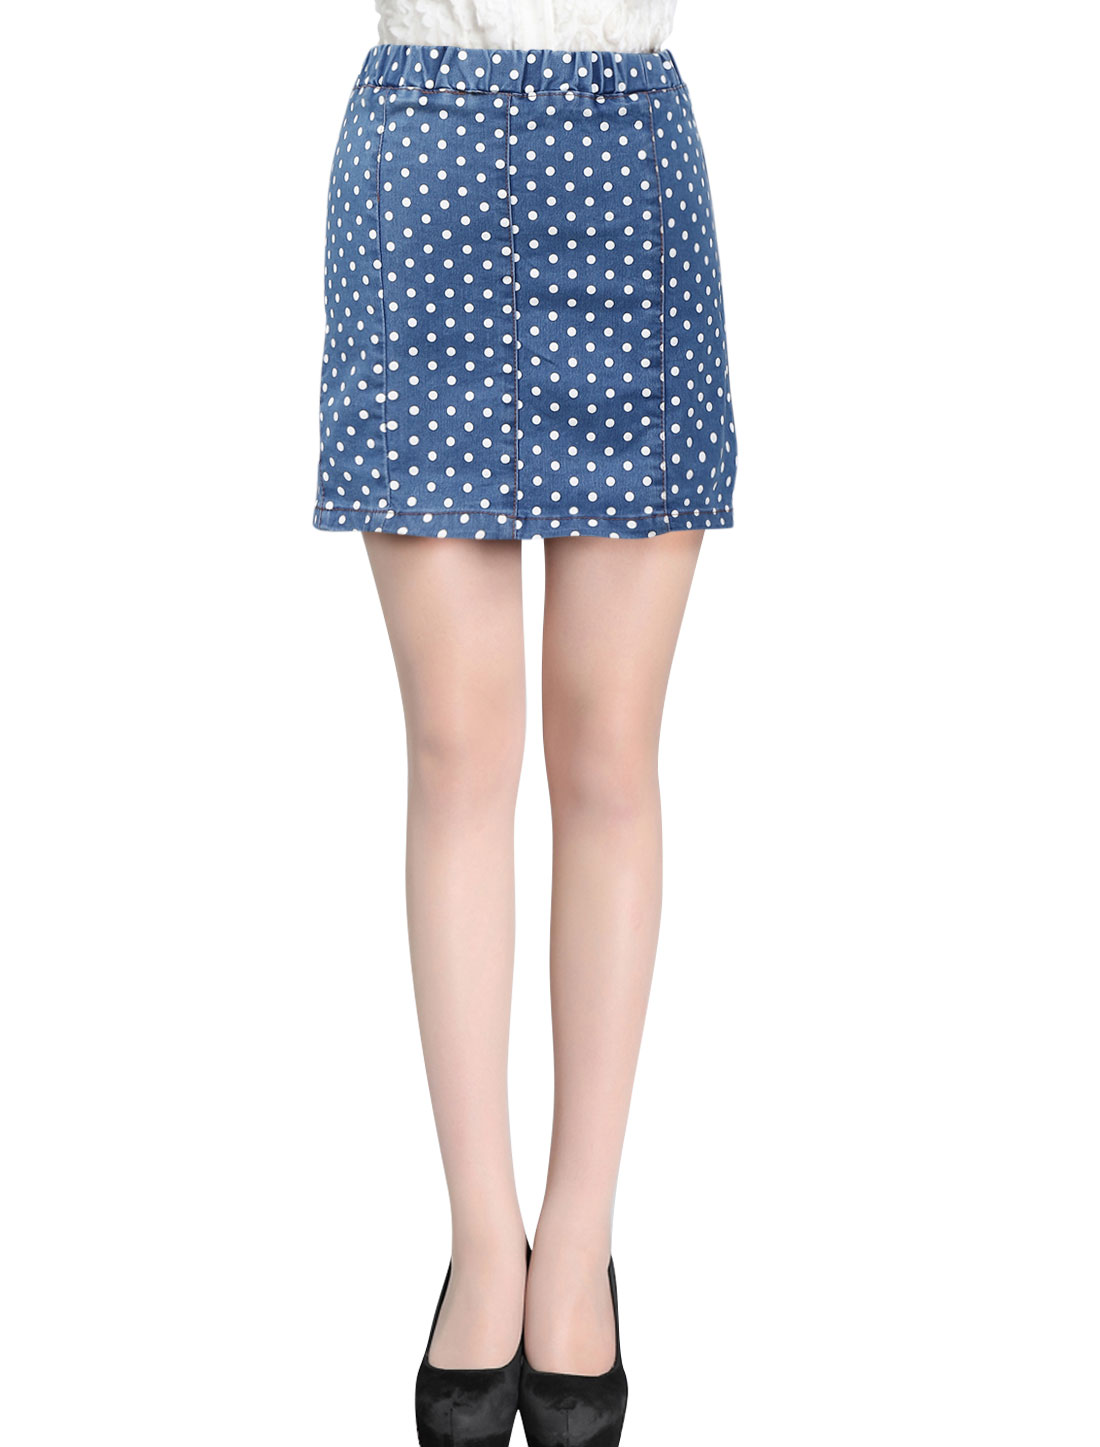 Women's Stretch Waist Dots Above Knee Denim Dark Blue XS Mini Skirt